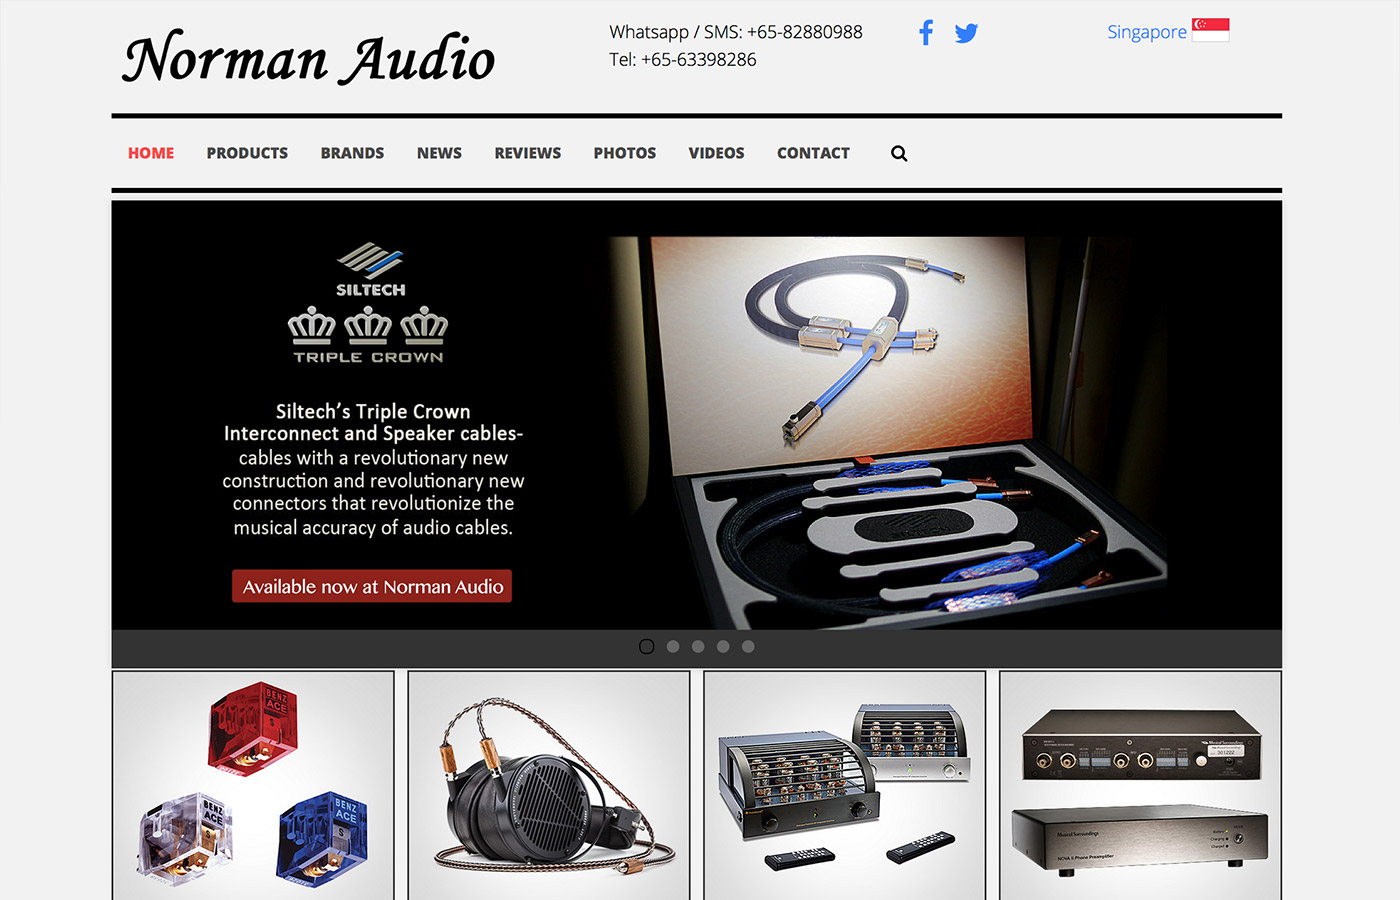 Norman Audio